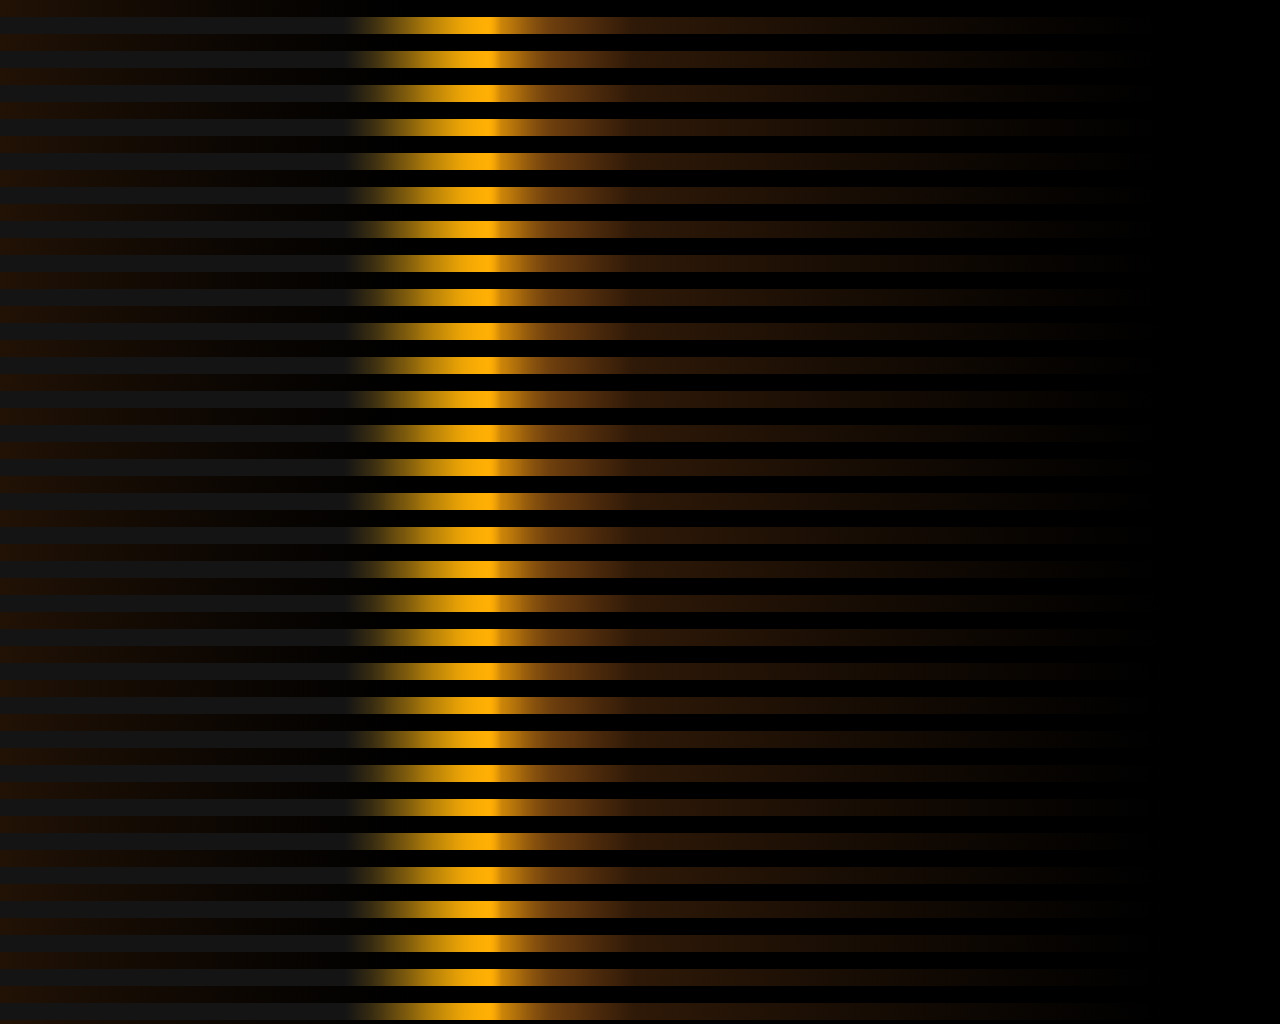 Black and gold background 1 desktop background - Gold desktop background ...